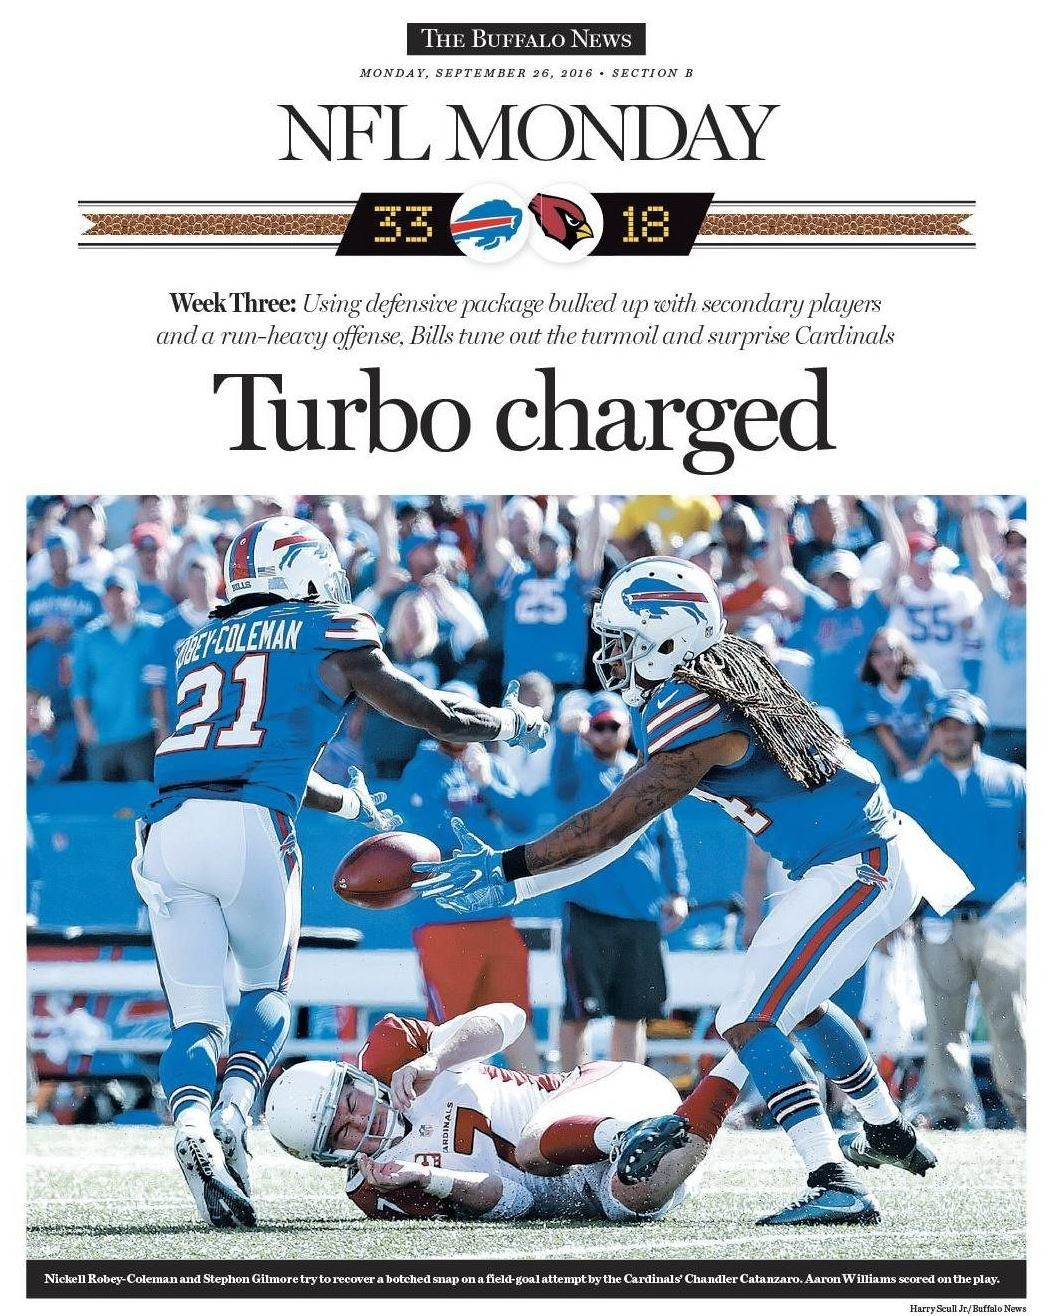 NFL Monday cover design by Jason Baum. Photo by Harry Scull Jr.